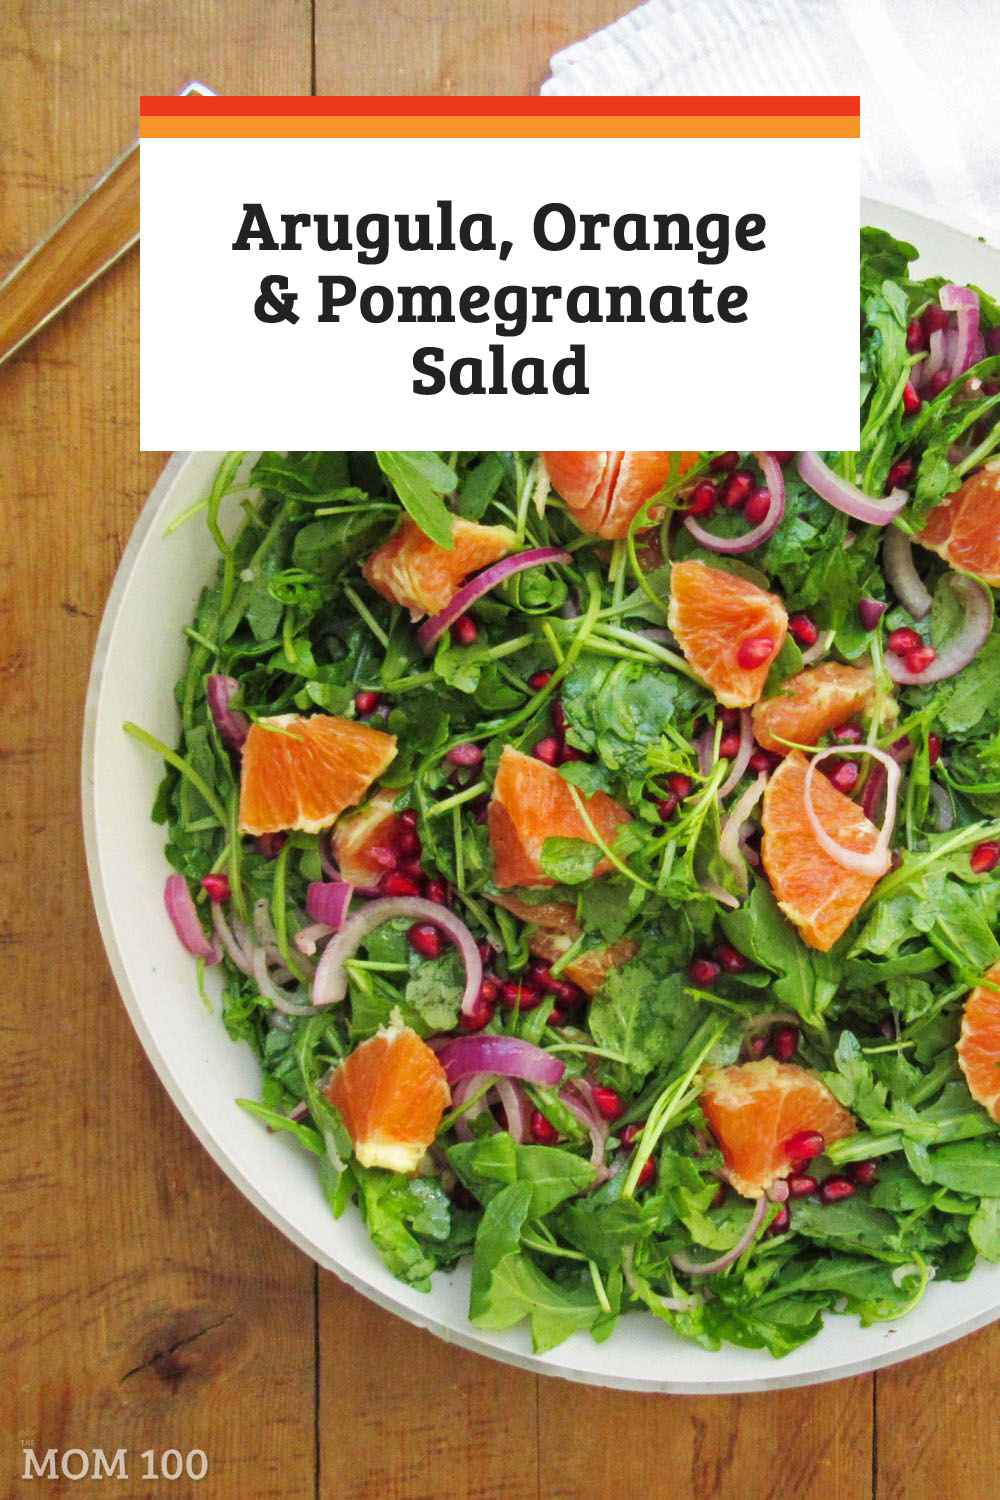 Arugula, Orange and Pomegranate Salad: A colorful, texture filled salad for the winter table.  15 minutes to make, but looks every bit like something you could find on a restaurant menu.  #salad #pomegranateseeds #holidaysalad